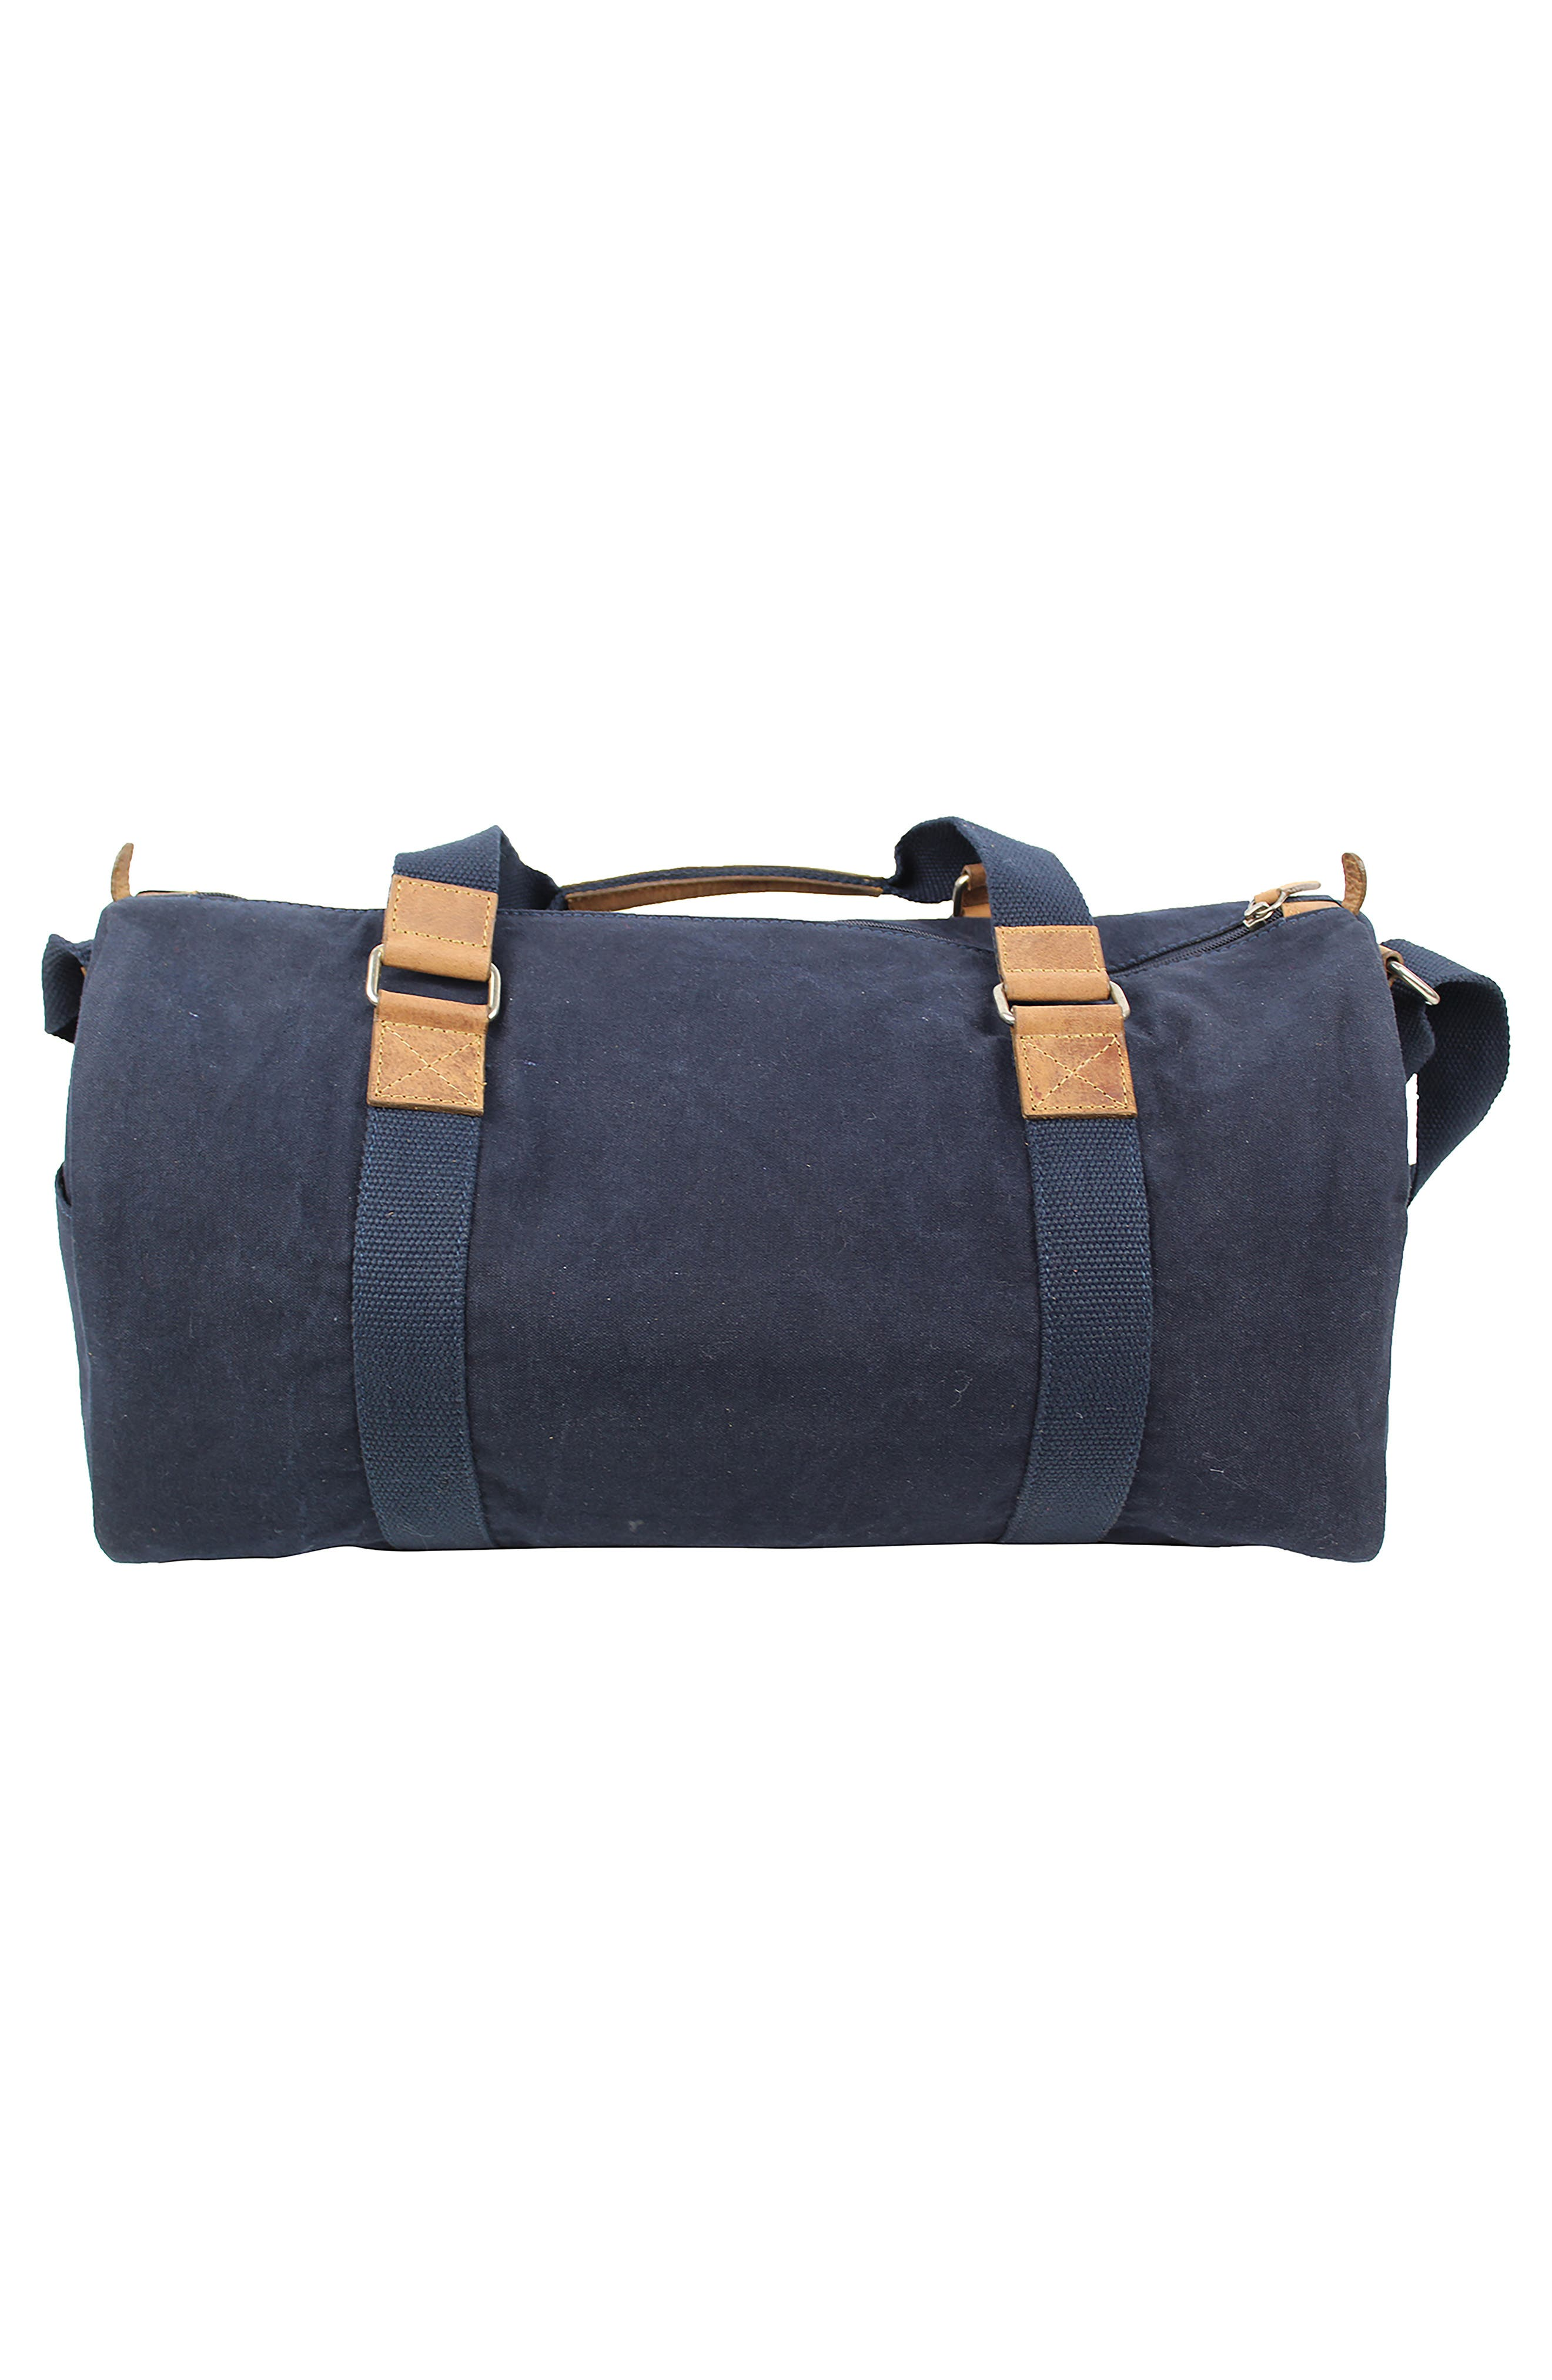 Canvas Duffel Bag,                             Alternate thumbnail 2, color,                             Navy